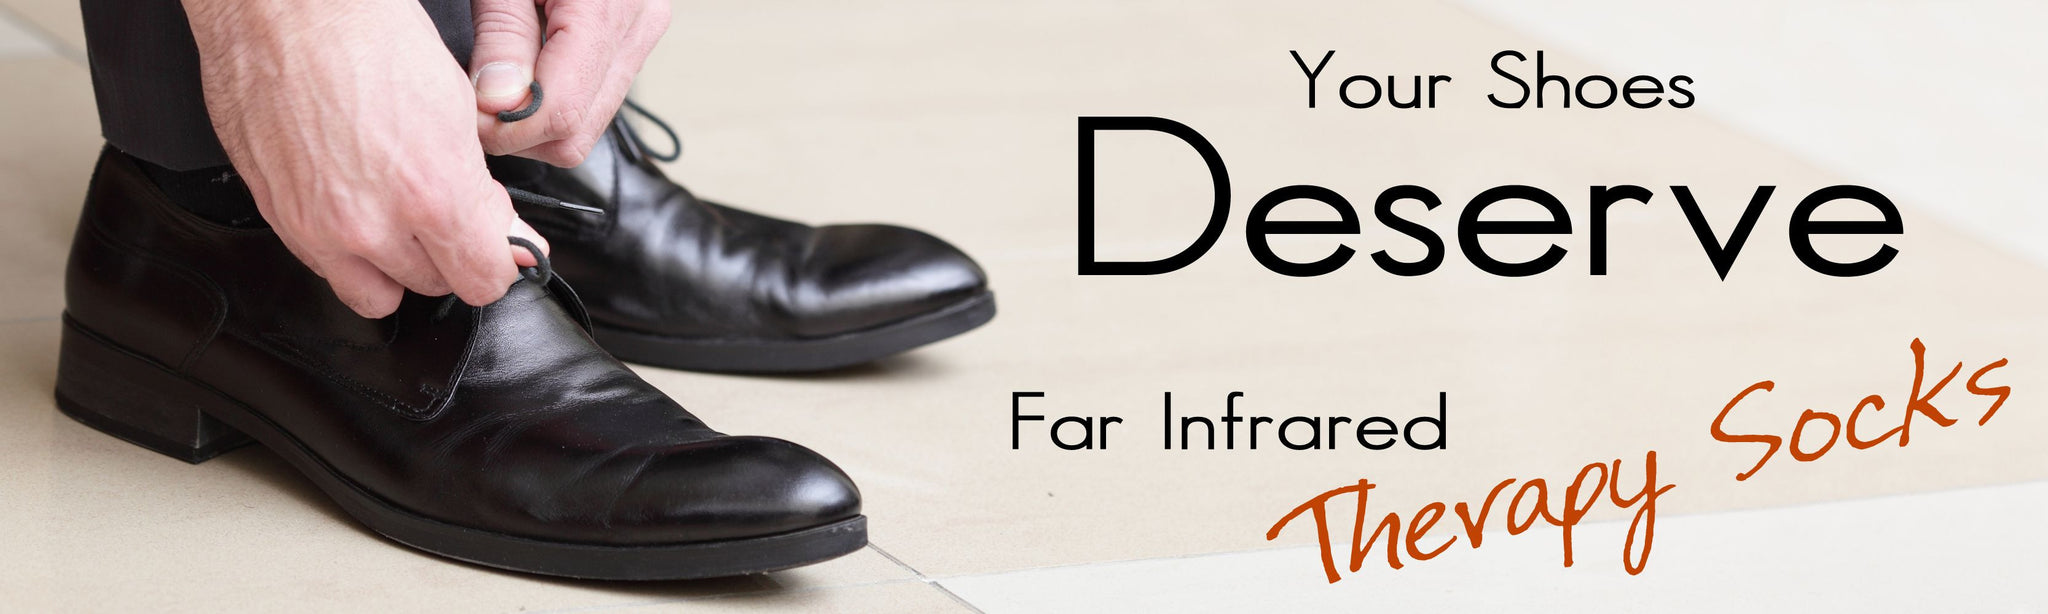 Your shoes Deserve Far Infrared Therapy Socks